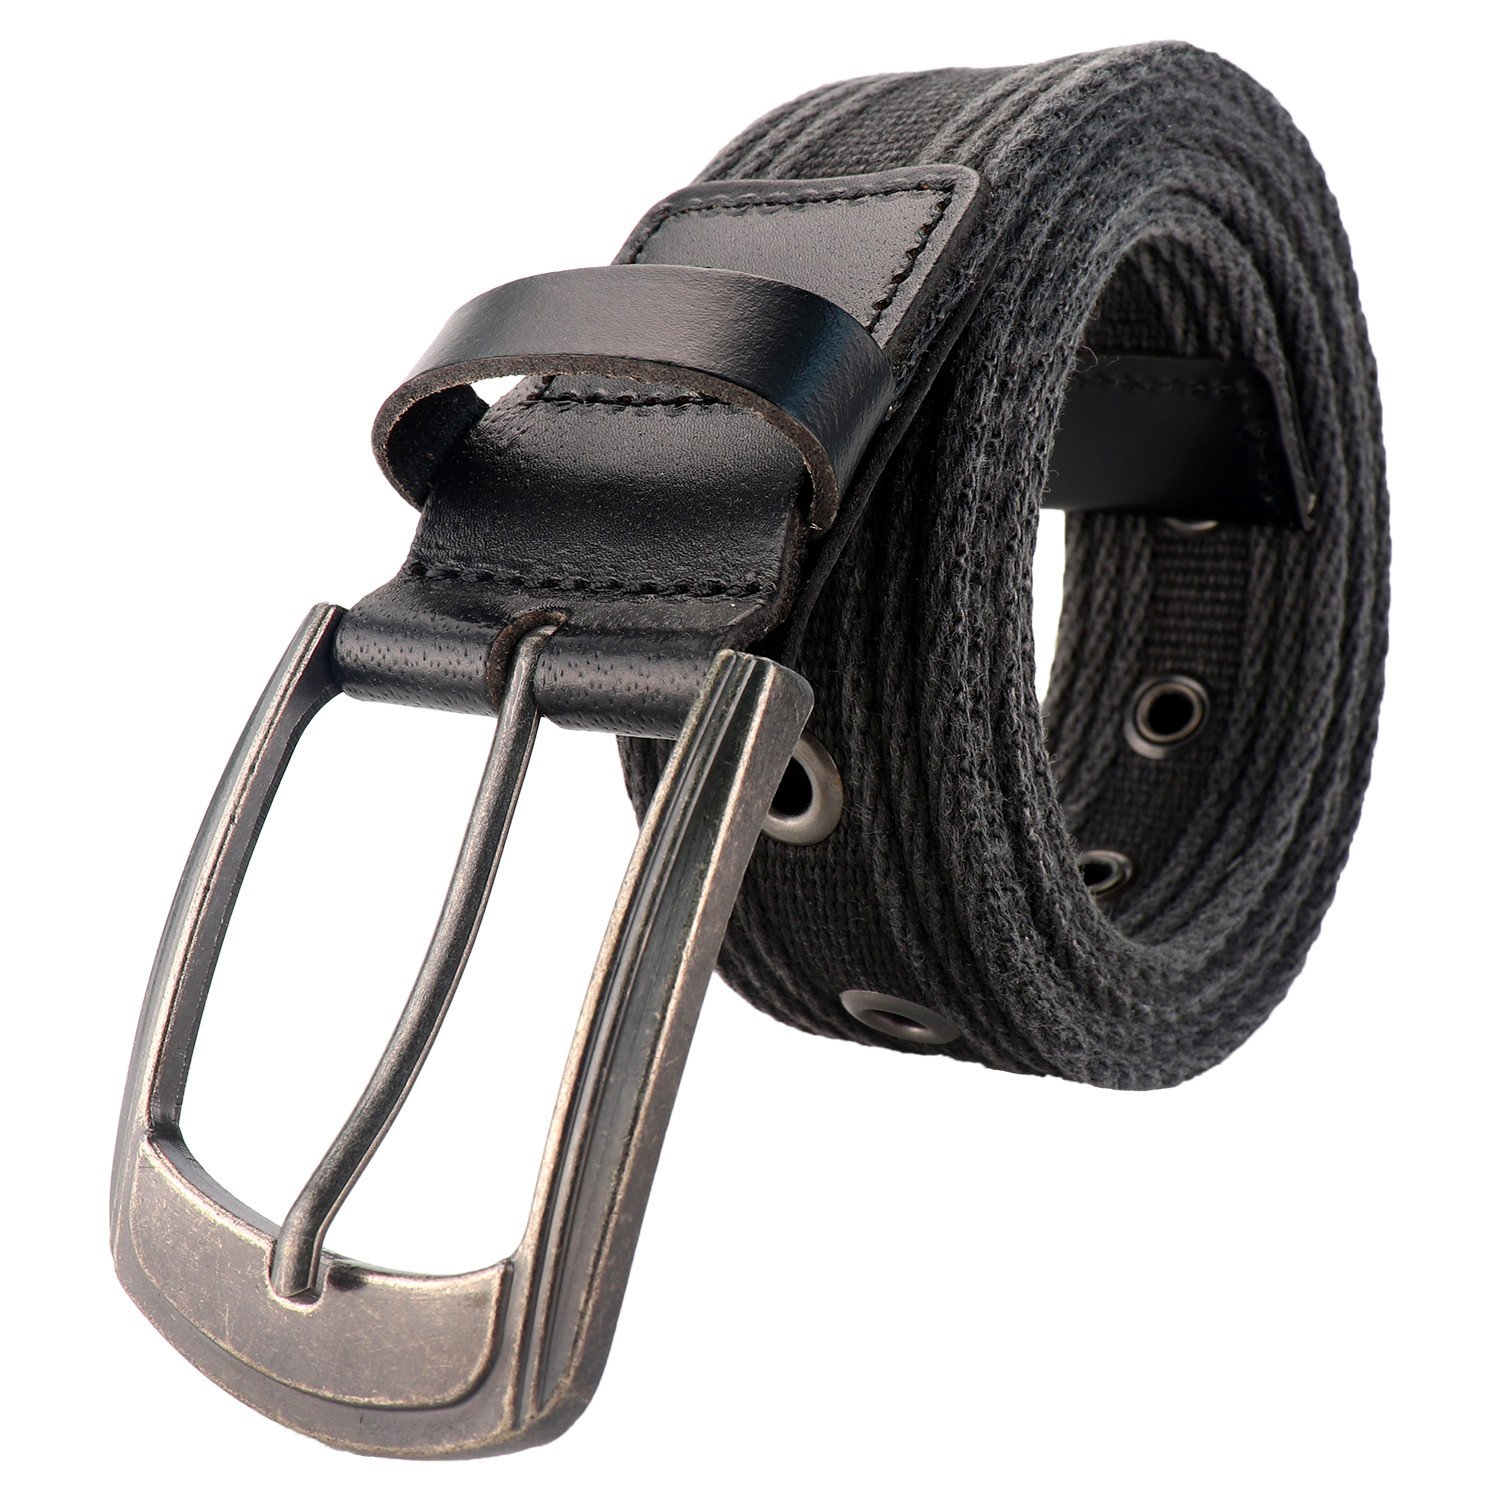 Men's Military Water-Washed Canvas Waist Web Belt Leather Tipped End and Silver Metal Buckle (Medium(34-36), Black)